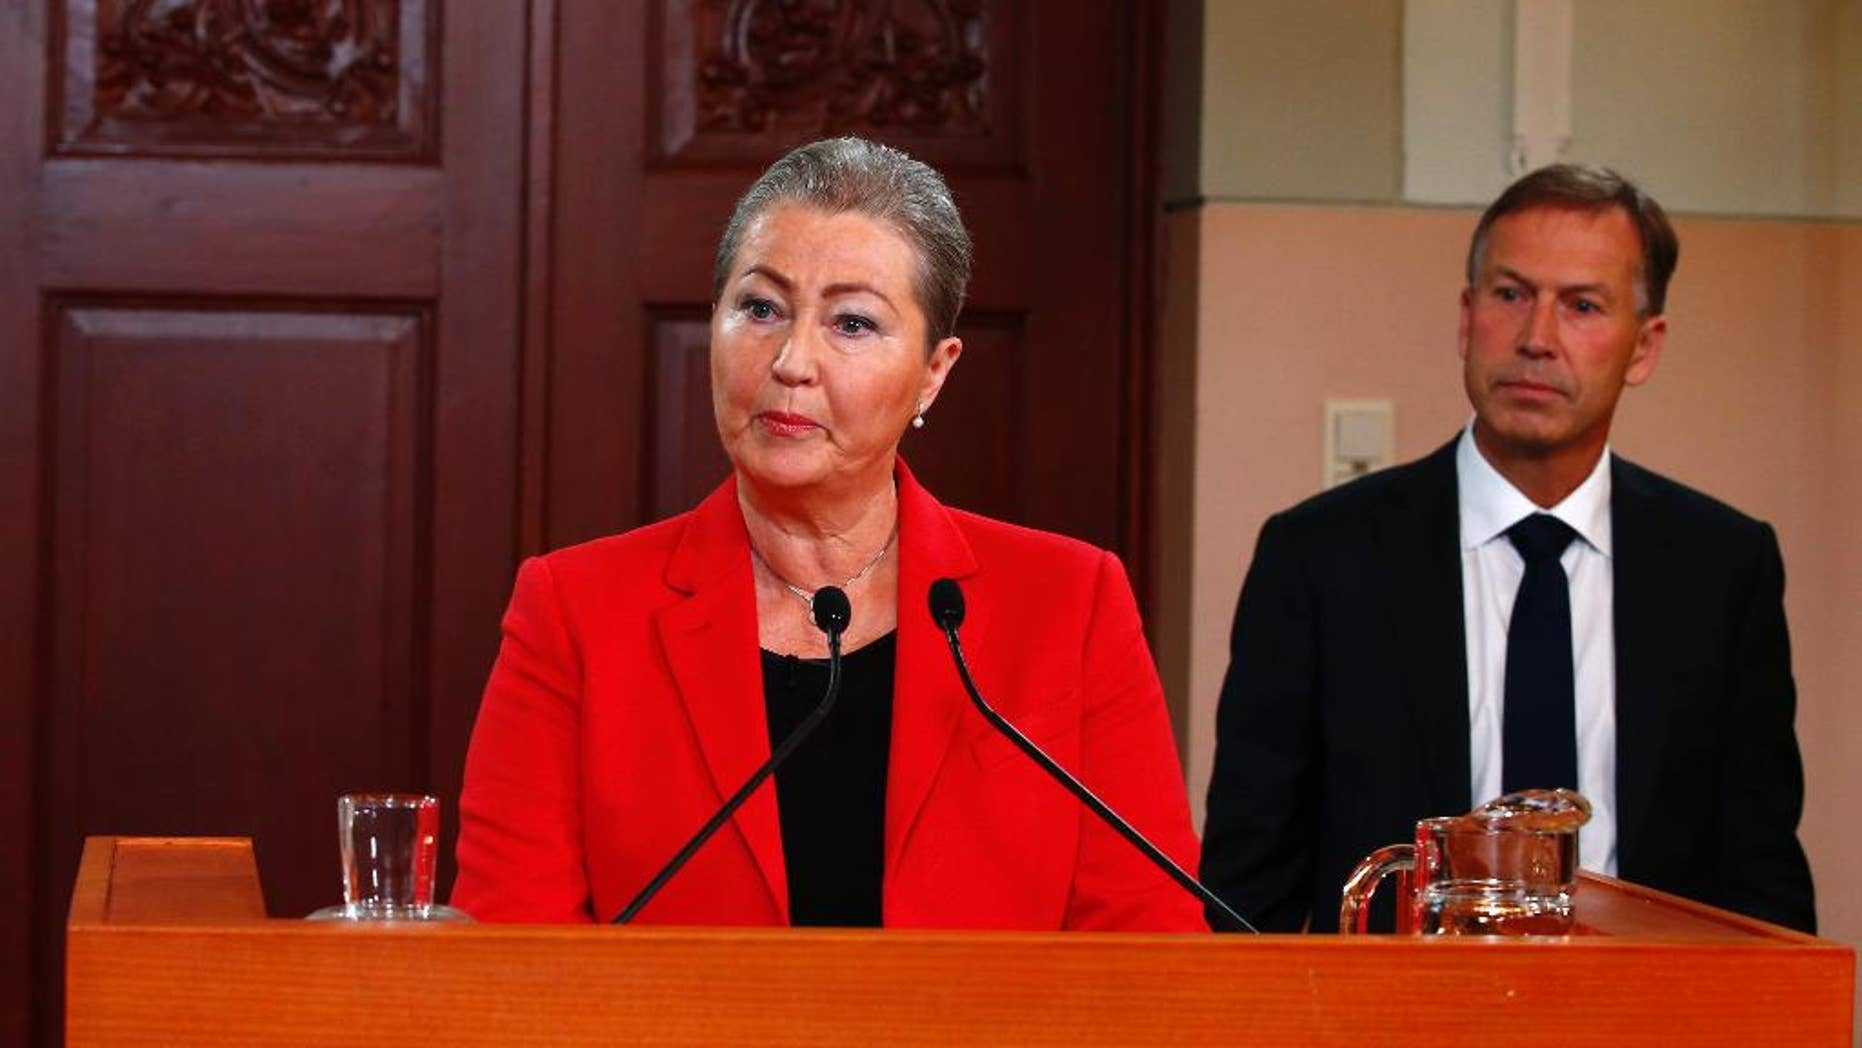 Kaci Kullmann Five, the new head of the Norwegian Nobel Peace Prize Committee, announces the winner of 2015 Nobel peace prize during a press conference in Oslo, Norway, Friday Oct. 9, 2015. The Norwegian Nobel Committee announced Friday that the 2015 Nobel Peace Prize was awarded to the Tunisian National Dialogue Quartet.